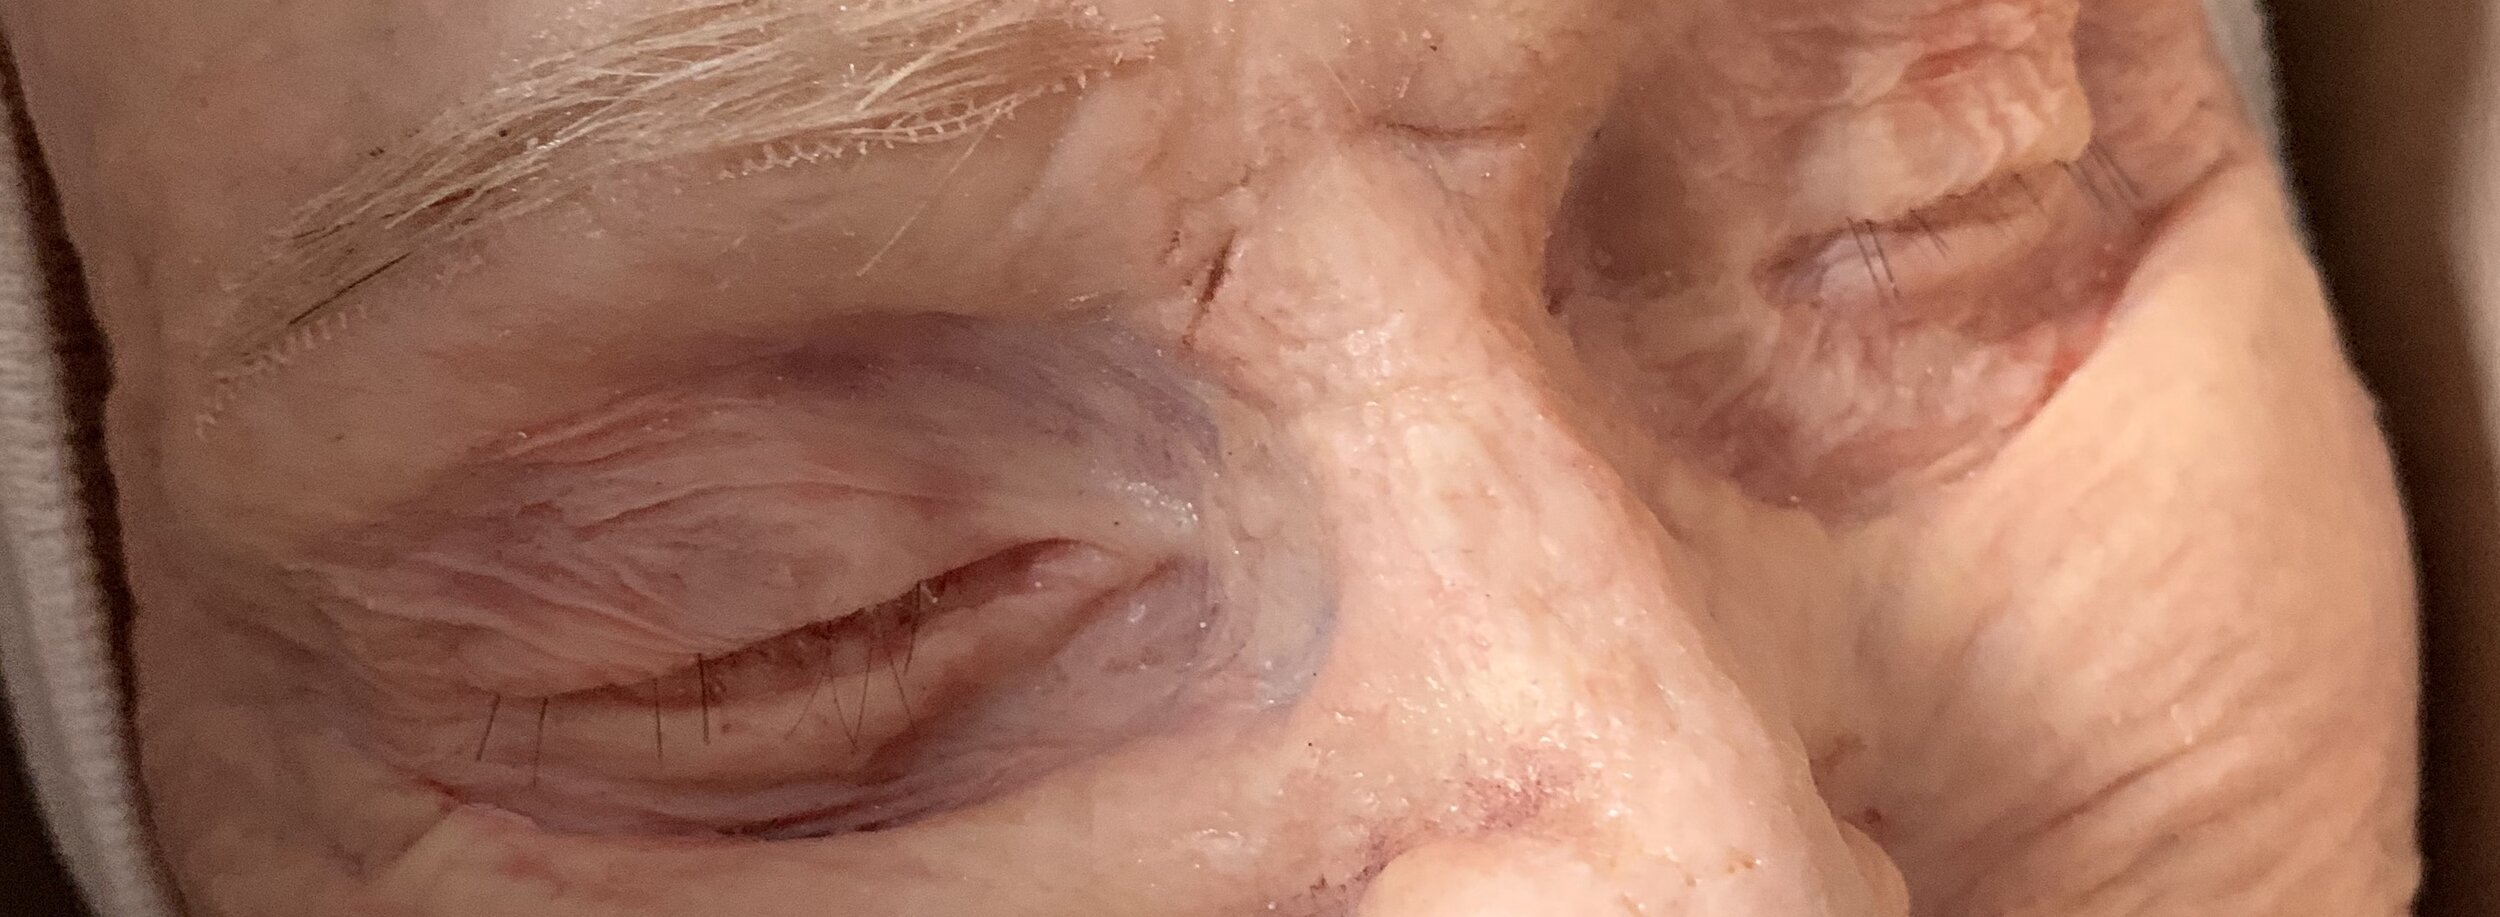 Portion of a full face silicone prosthetic.